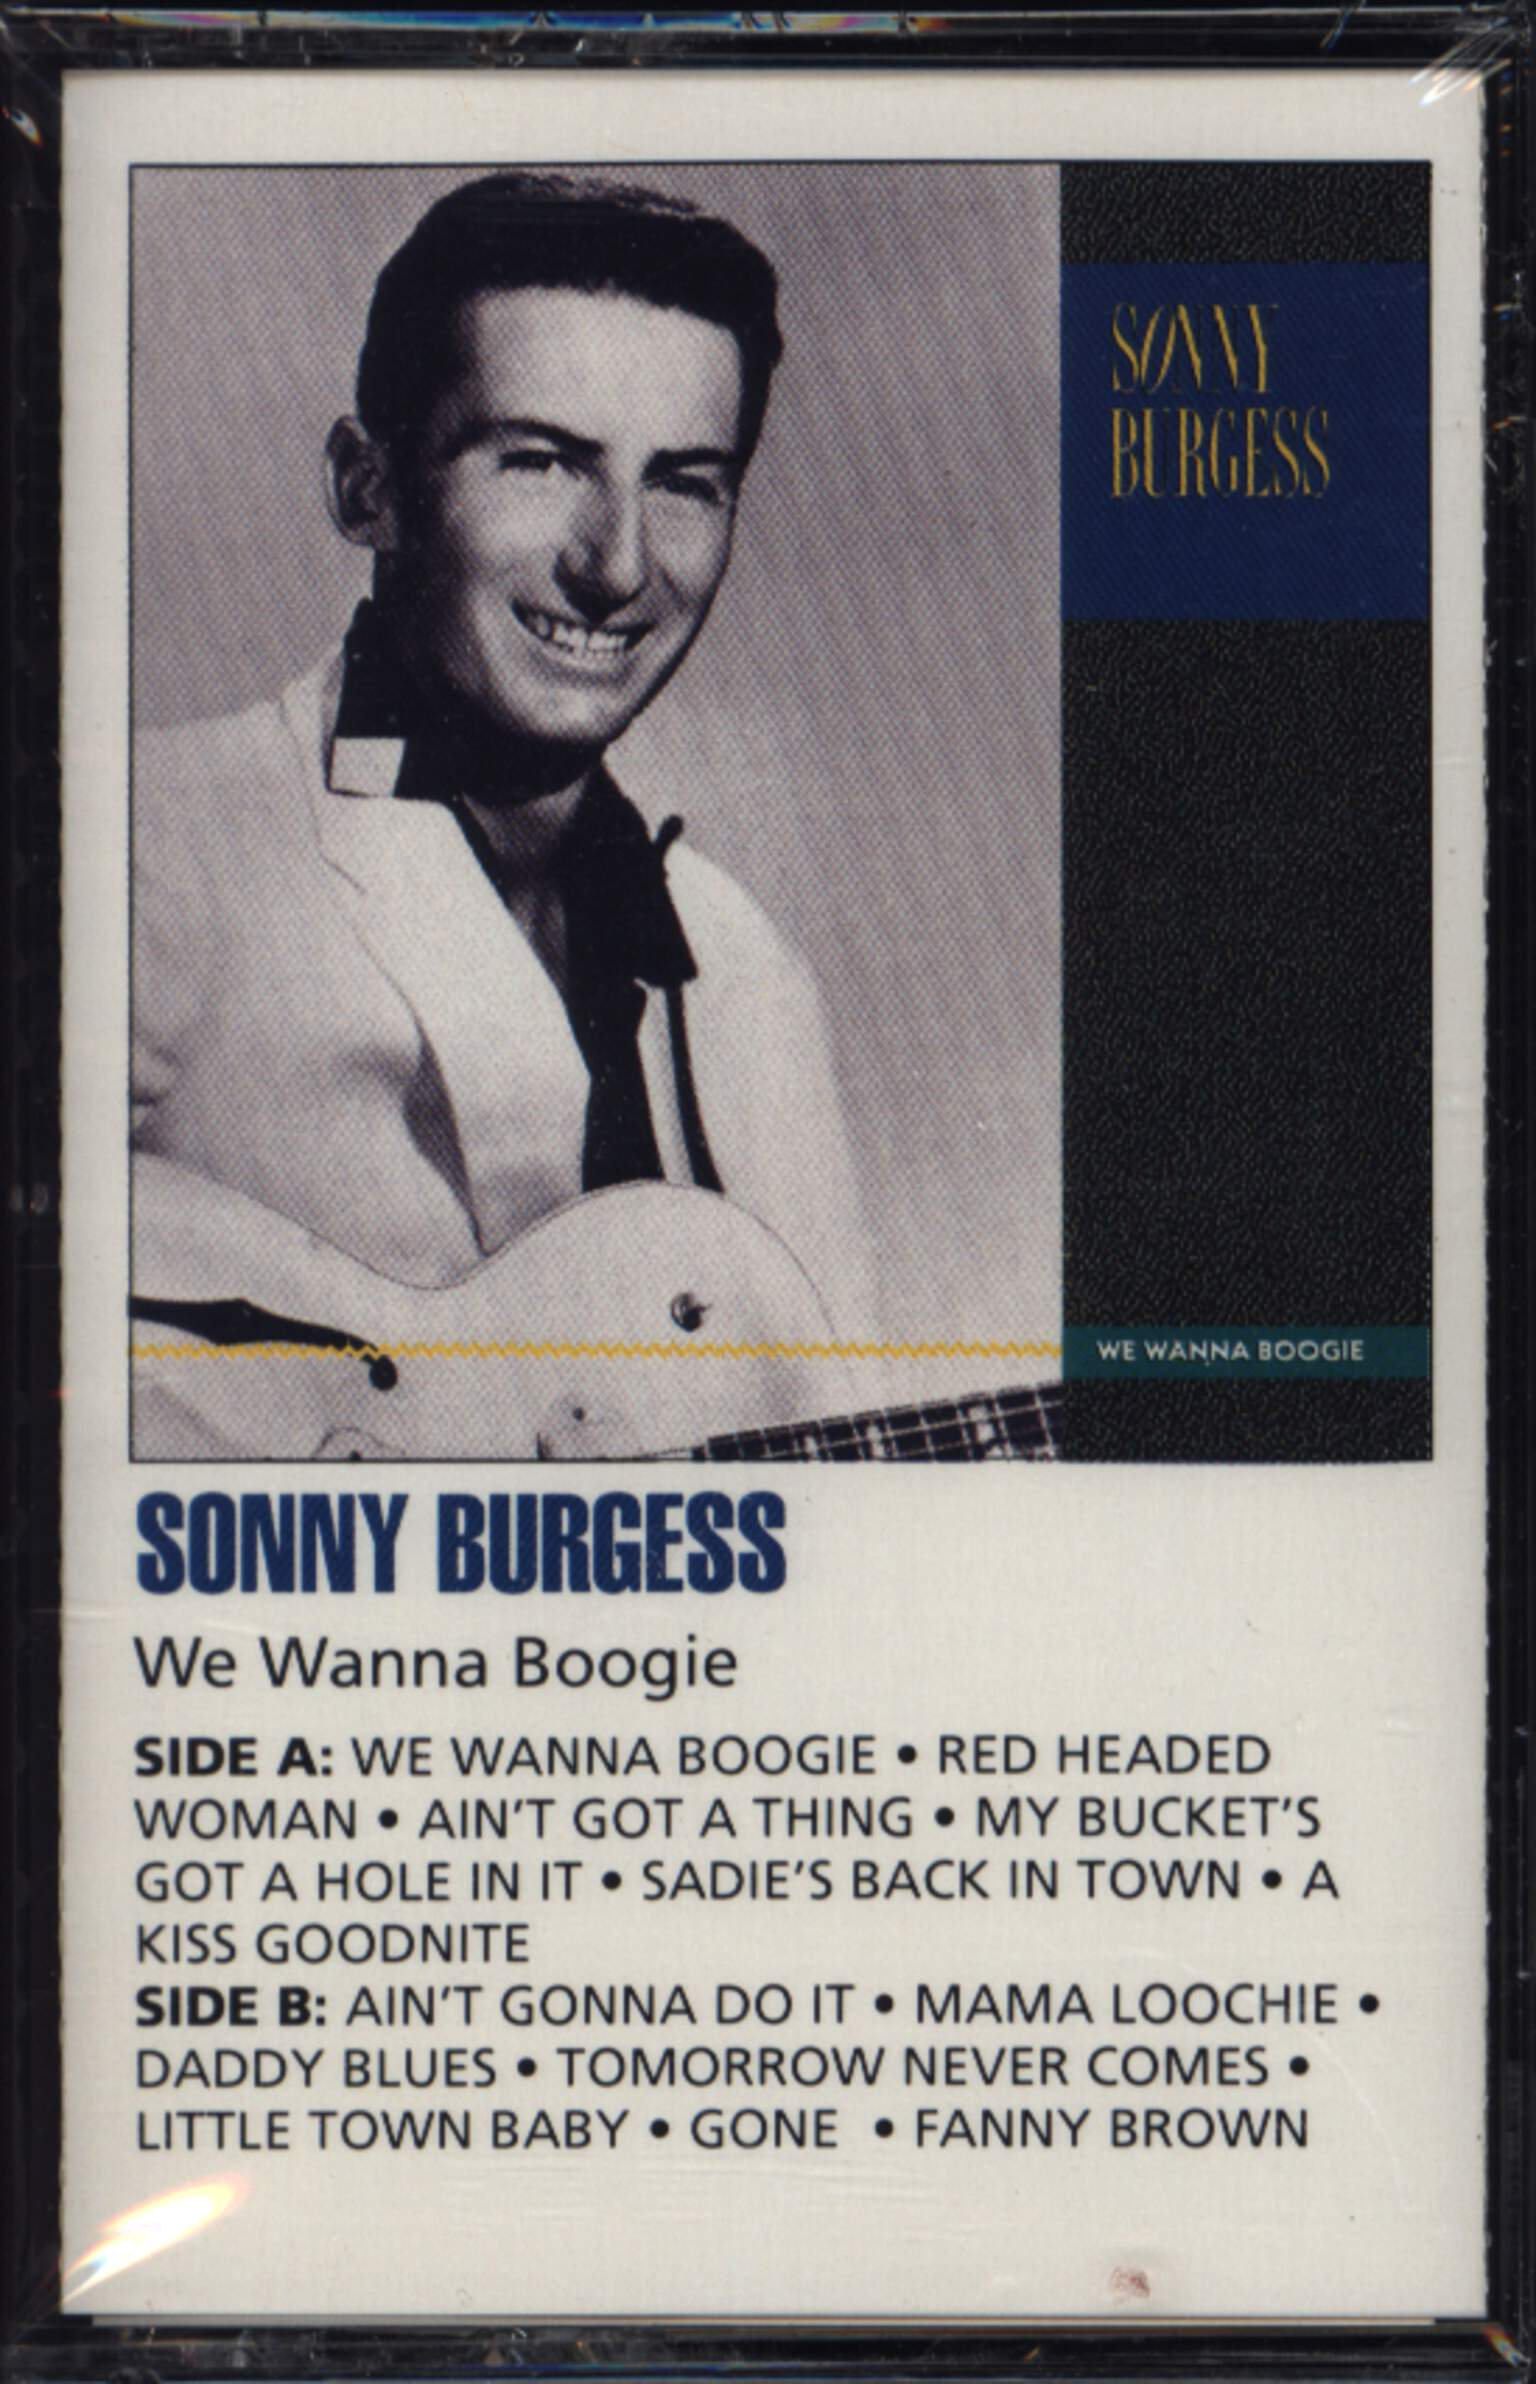 Sonny Burgess: We Wanna Boogie, Compact Cassette